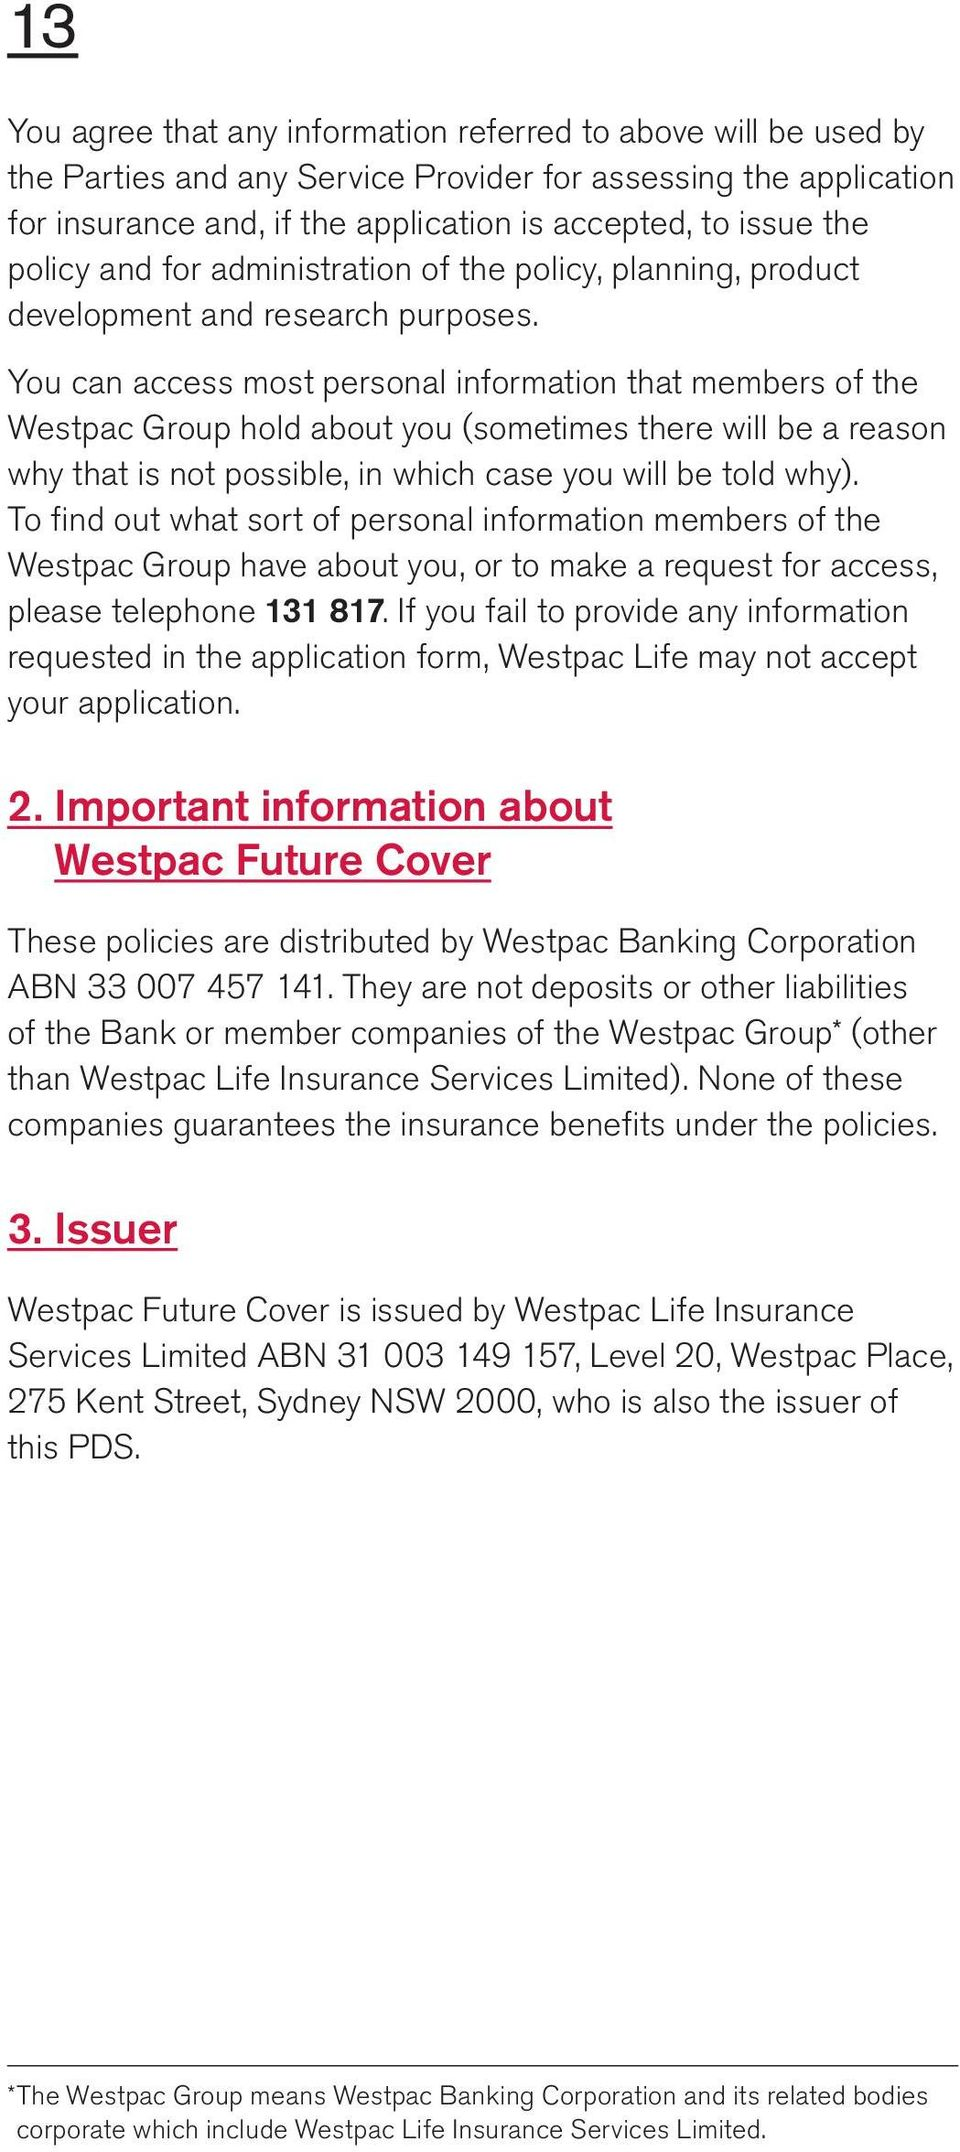 You can access most personal information that members of the Westpac Group hold about you (sometimes there will be a reason why that is not possible, in which case you will be told why).